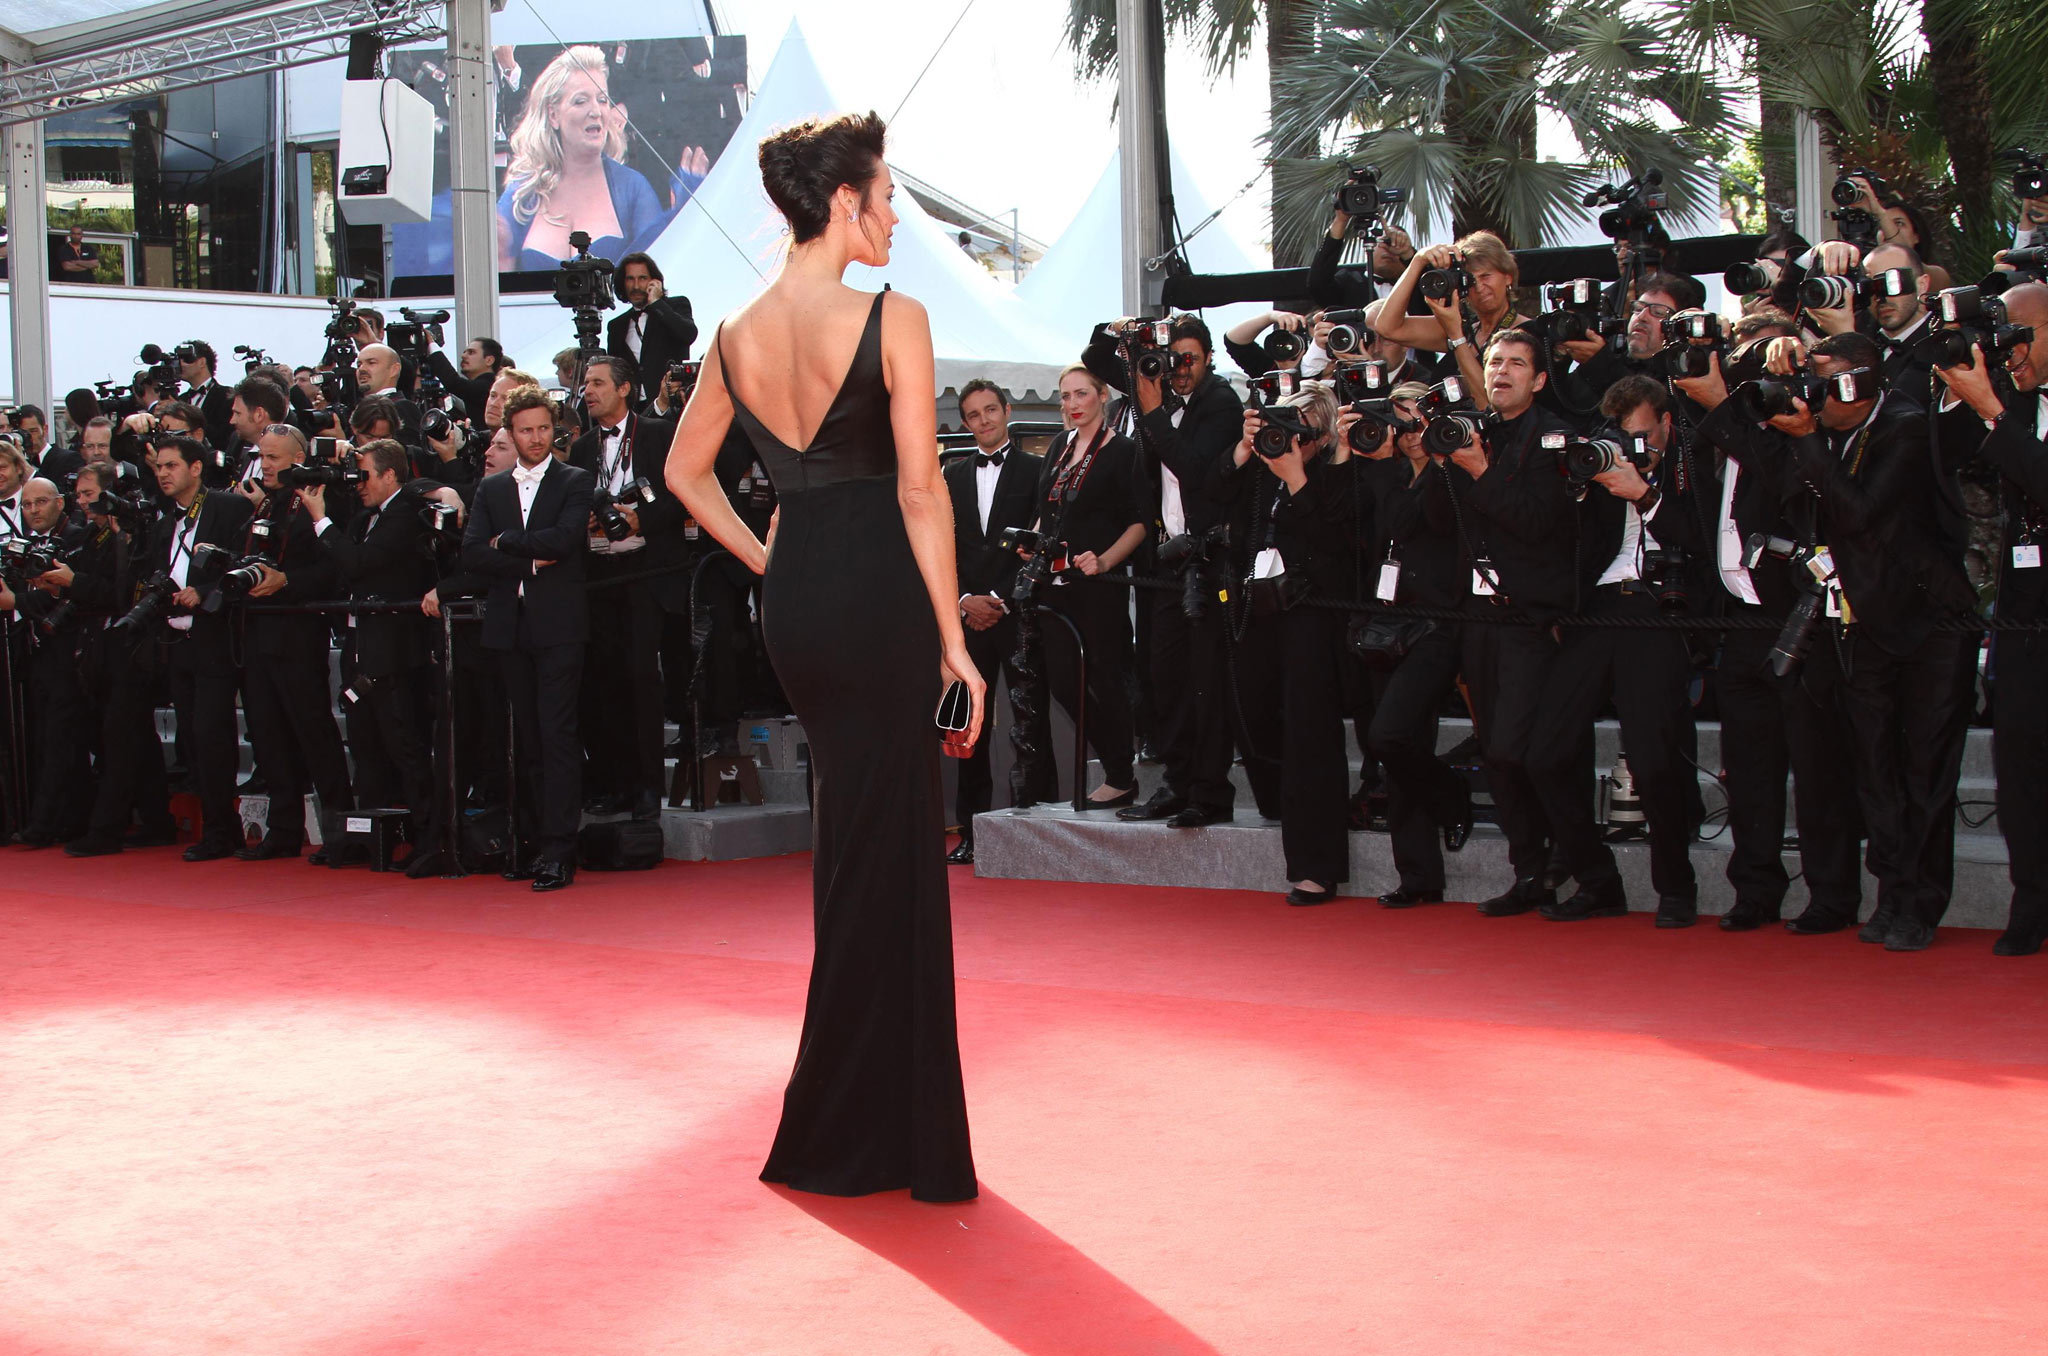 Ten alternative Cannes Film Festival gongs